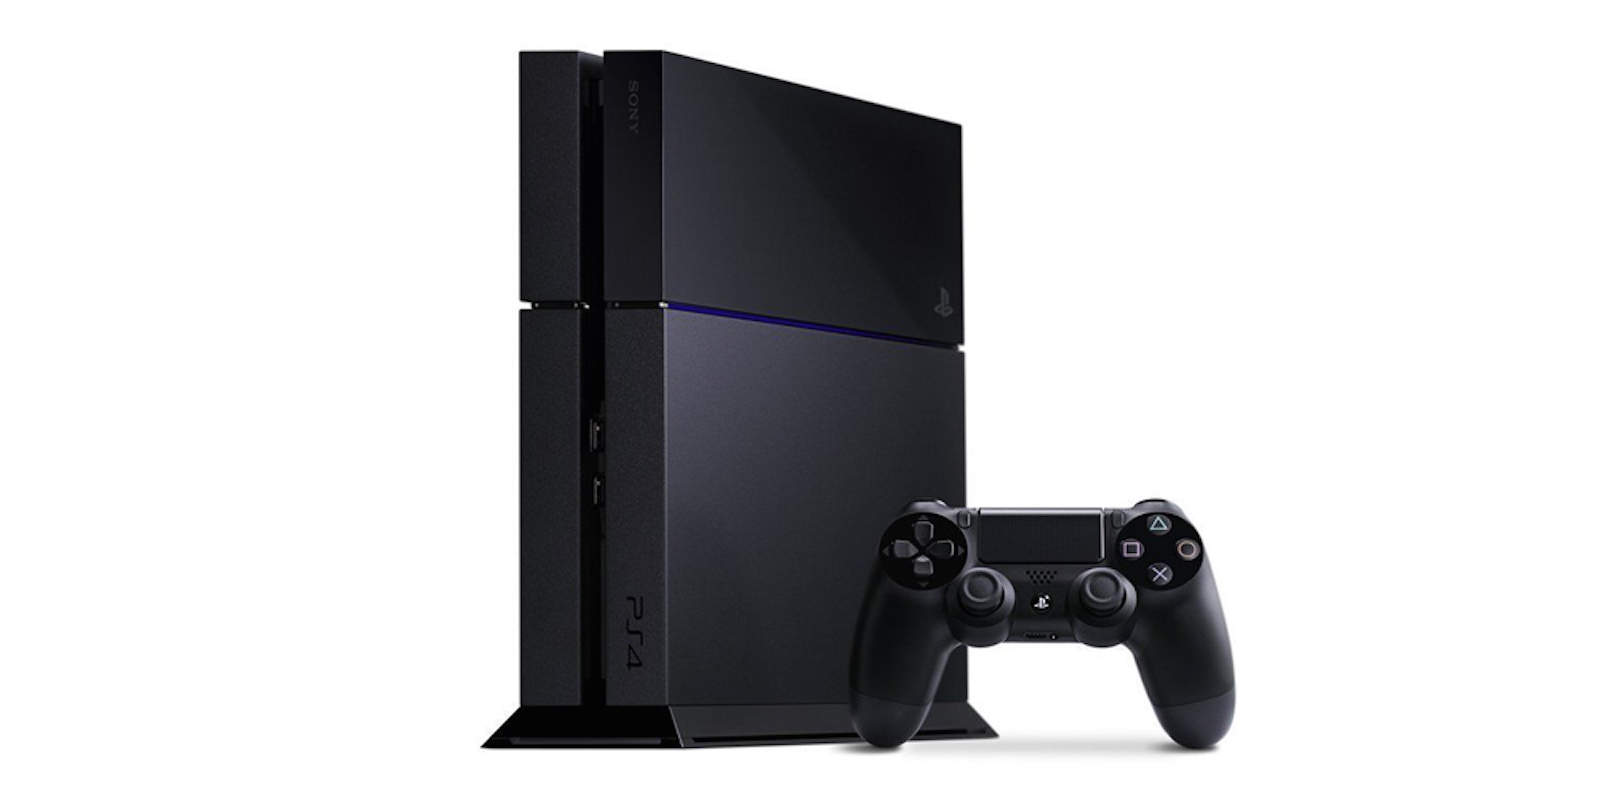 Refurb IPhone 6 Drops To 370 PlayStation 4 Sees First